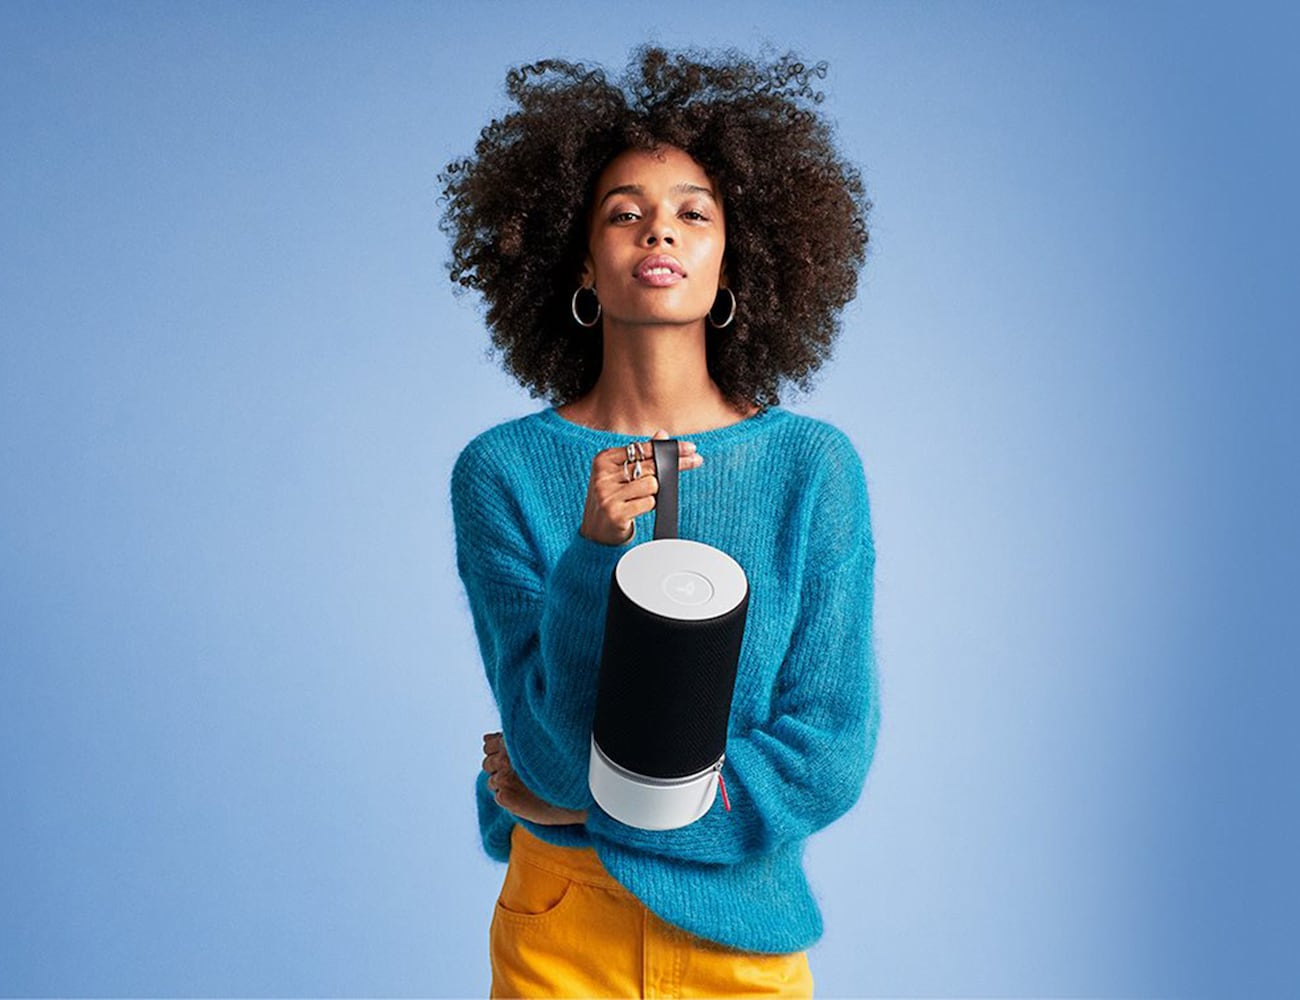 Libratone ZIPP 2 Smart Portable Alexa Speaker changes colors depending on its cover